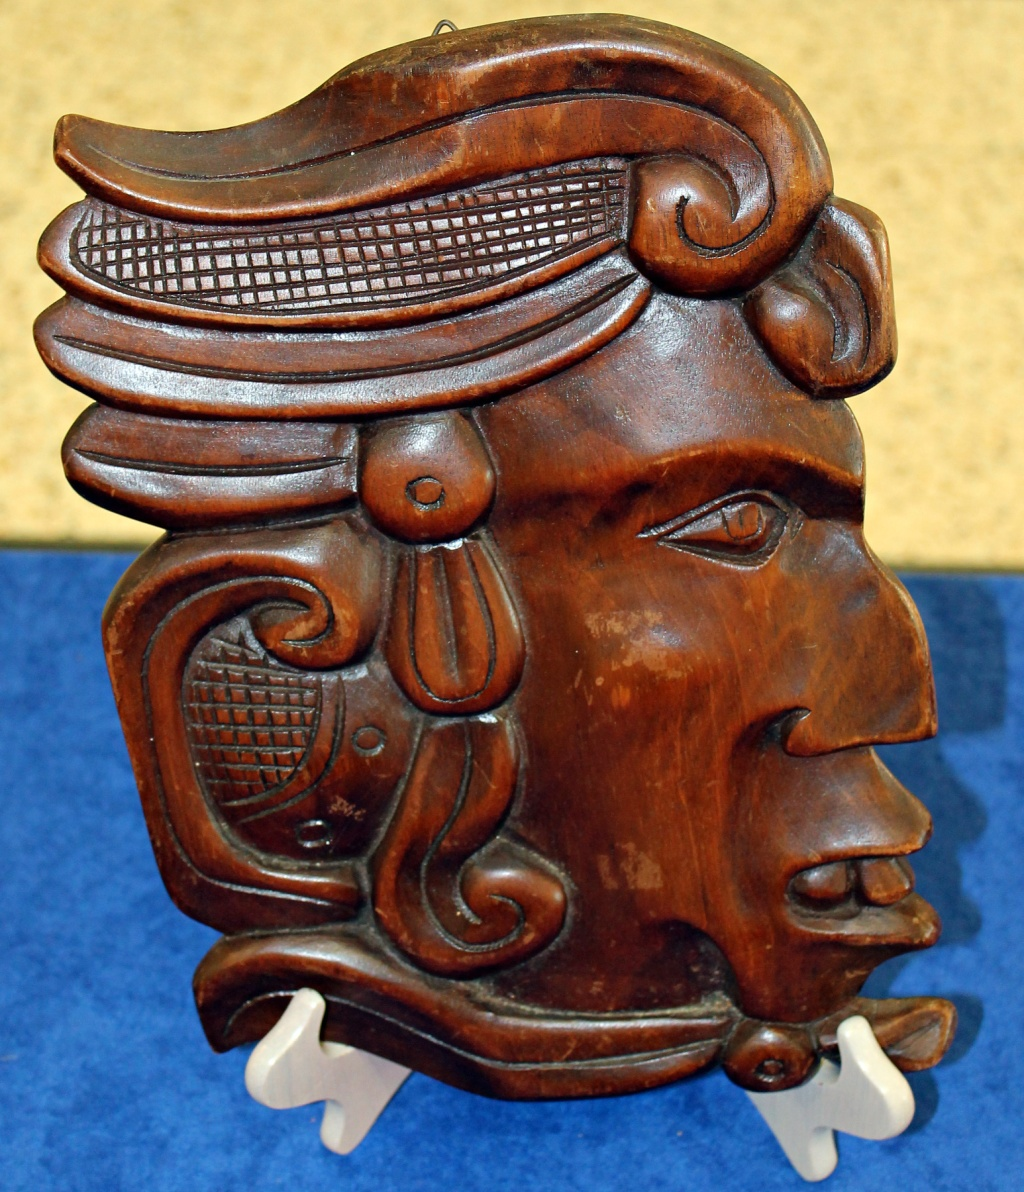 wood carving museum of hispanic and latino cultures